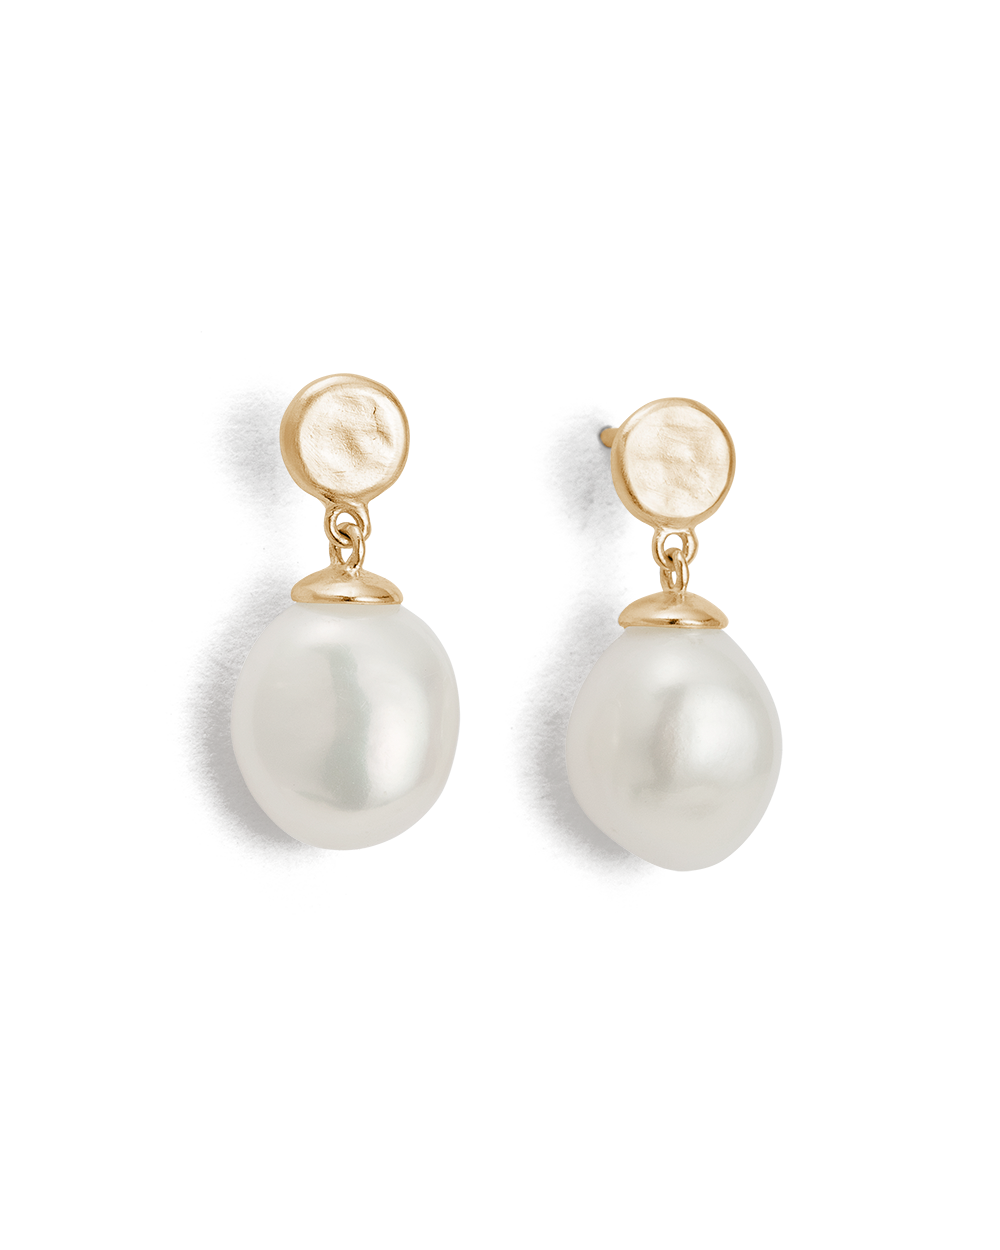 MOON TIDE PEARL EARRINGS (9K GOLD)